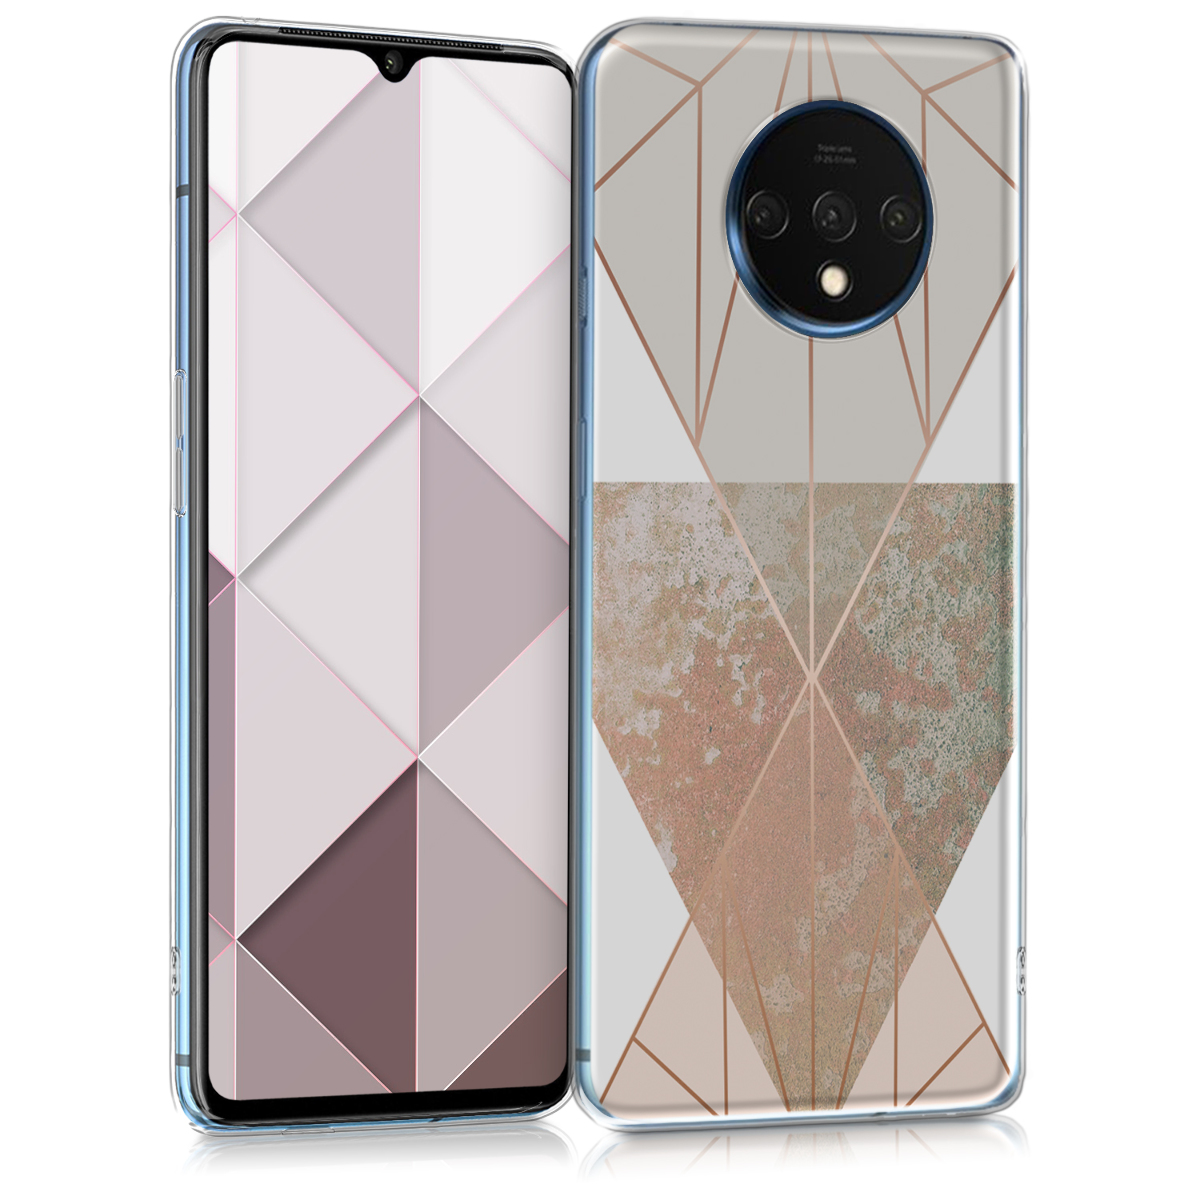 KW Θήκη Σιλικόνης OnePlus 7T - Triangular Shapes - Beige / Rose Gold / White (51154.02)